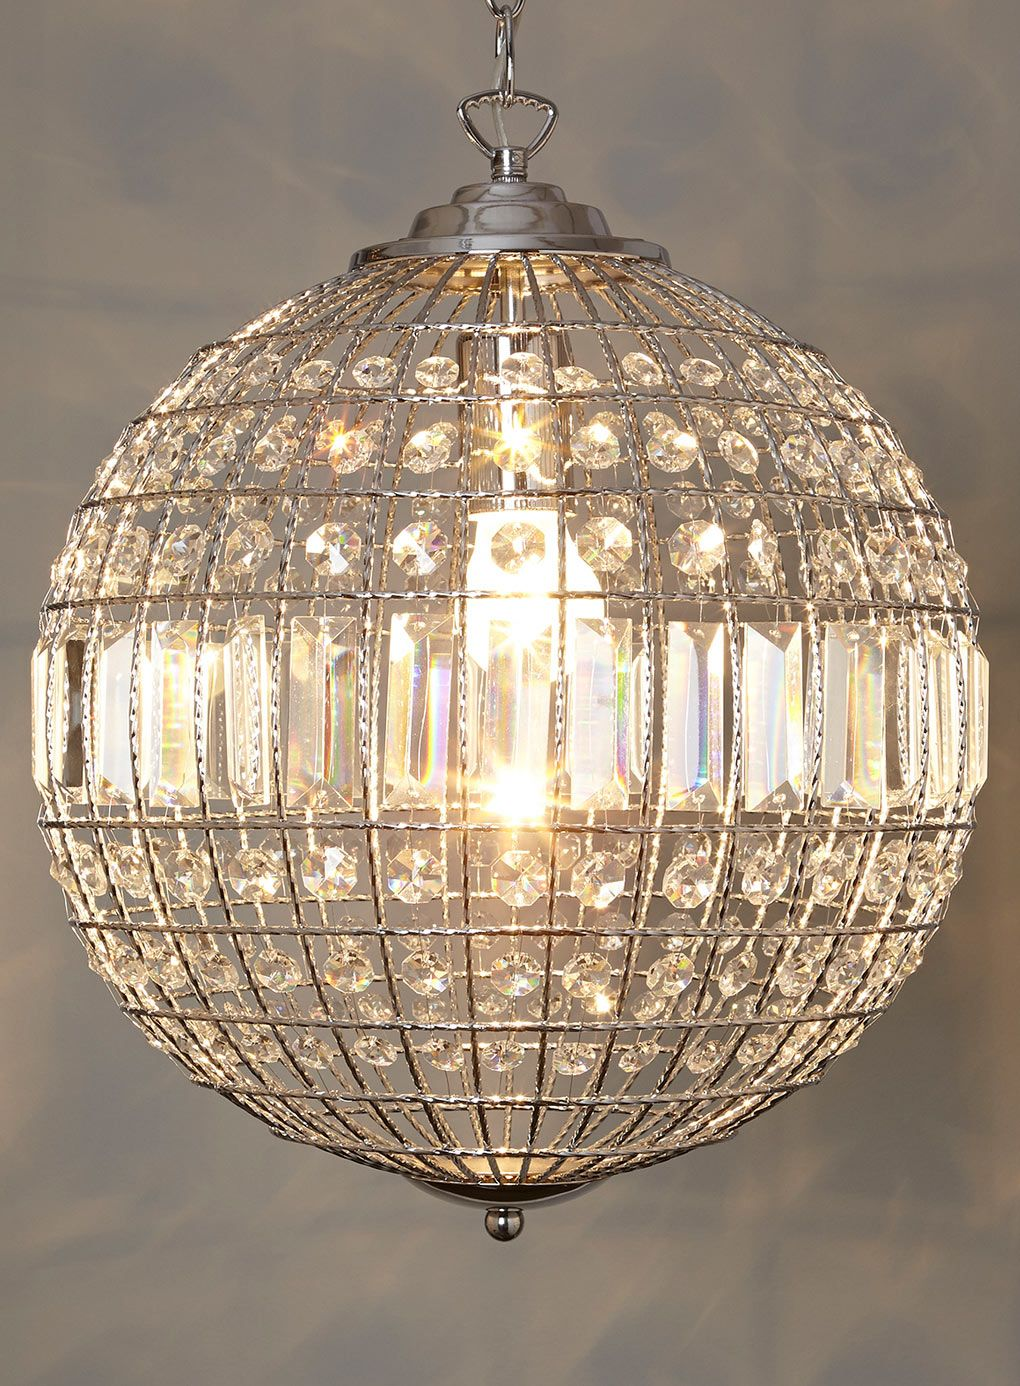 Ursula small crystal ball pendant - Lighting Event - Home, Lighting &  Furniture - BHS